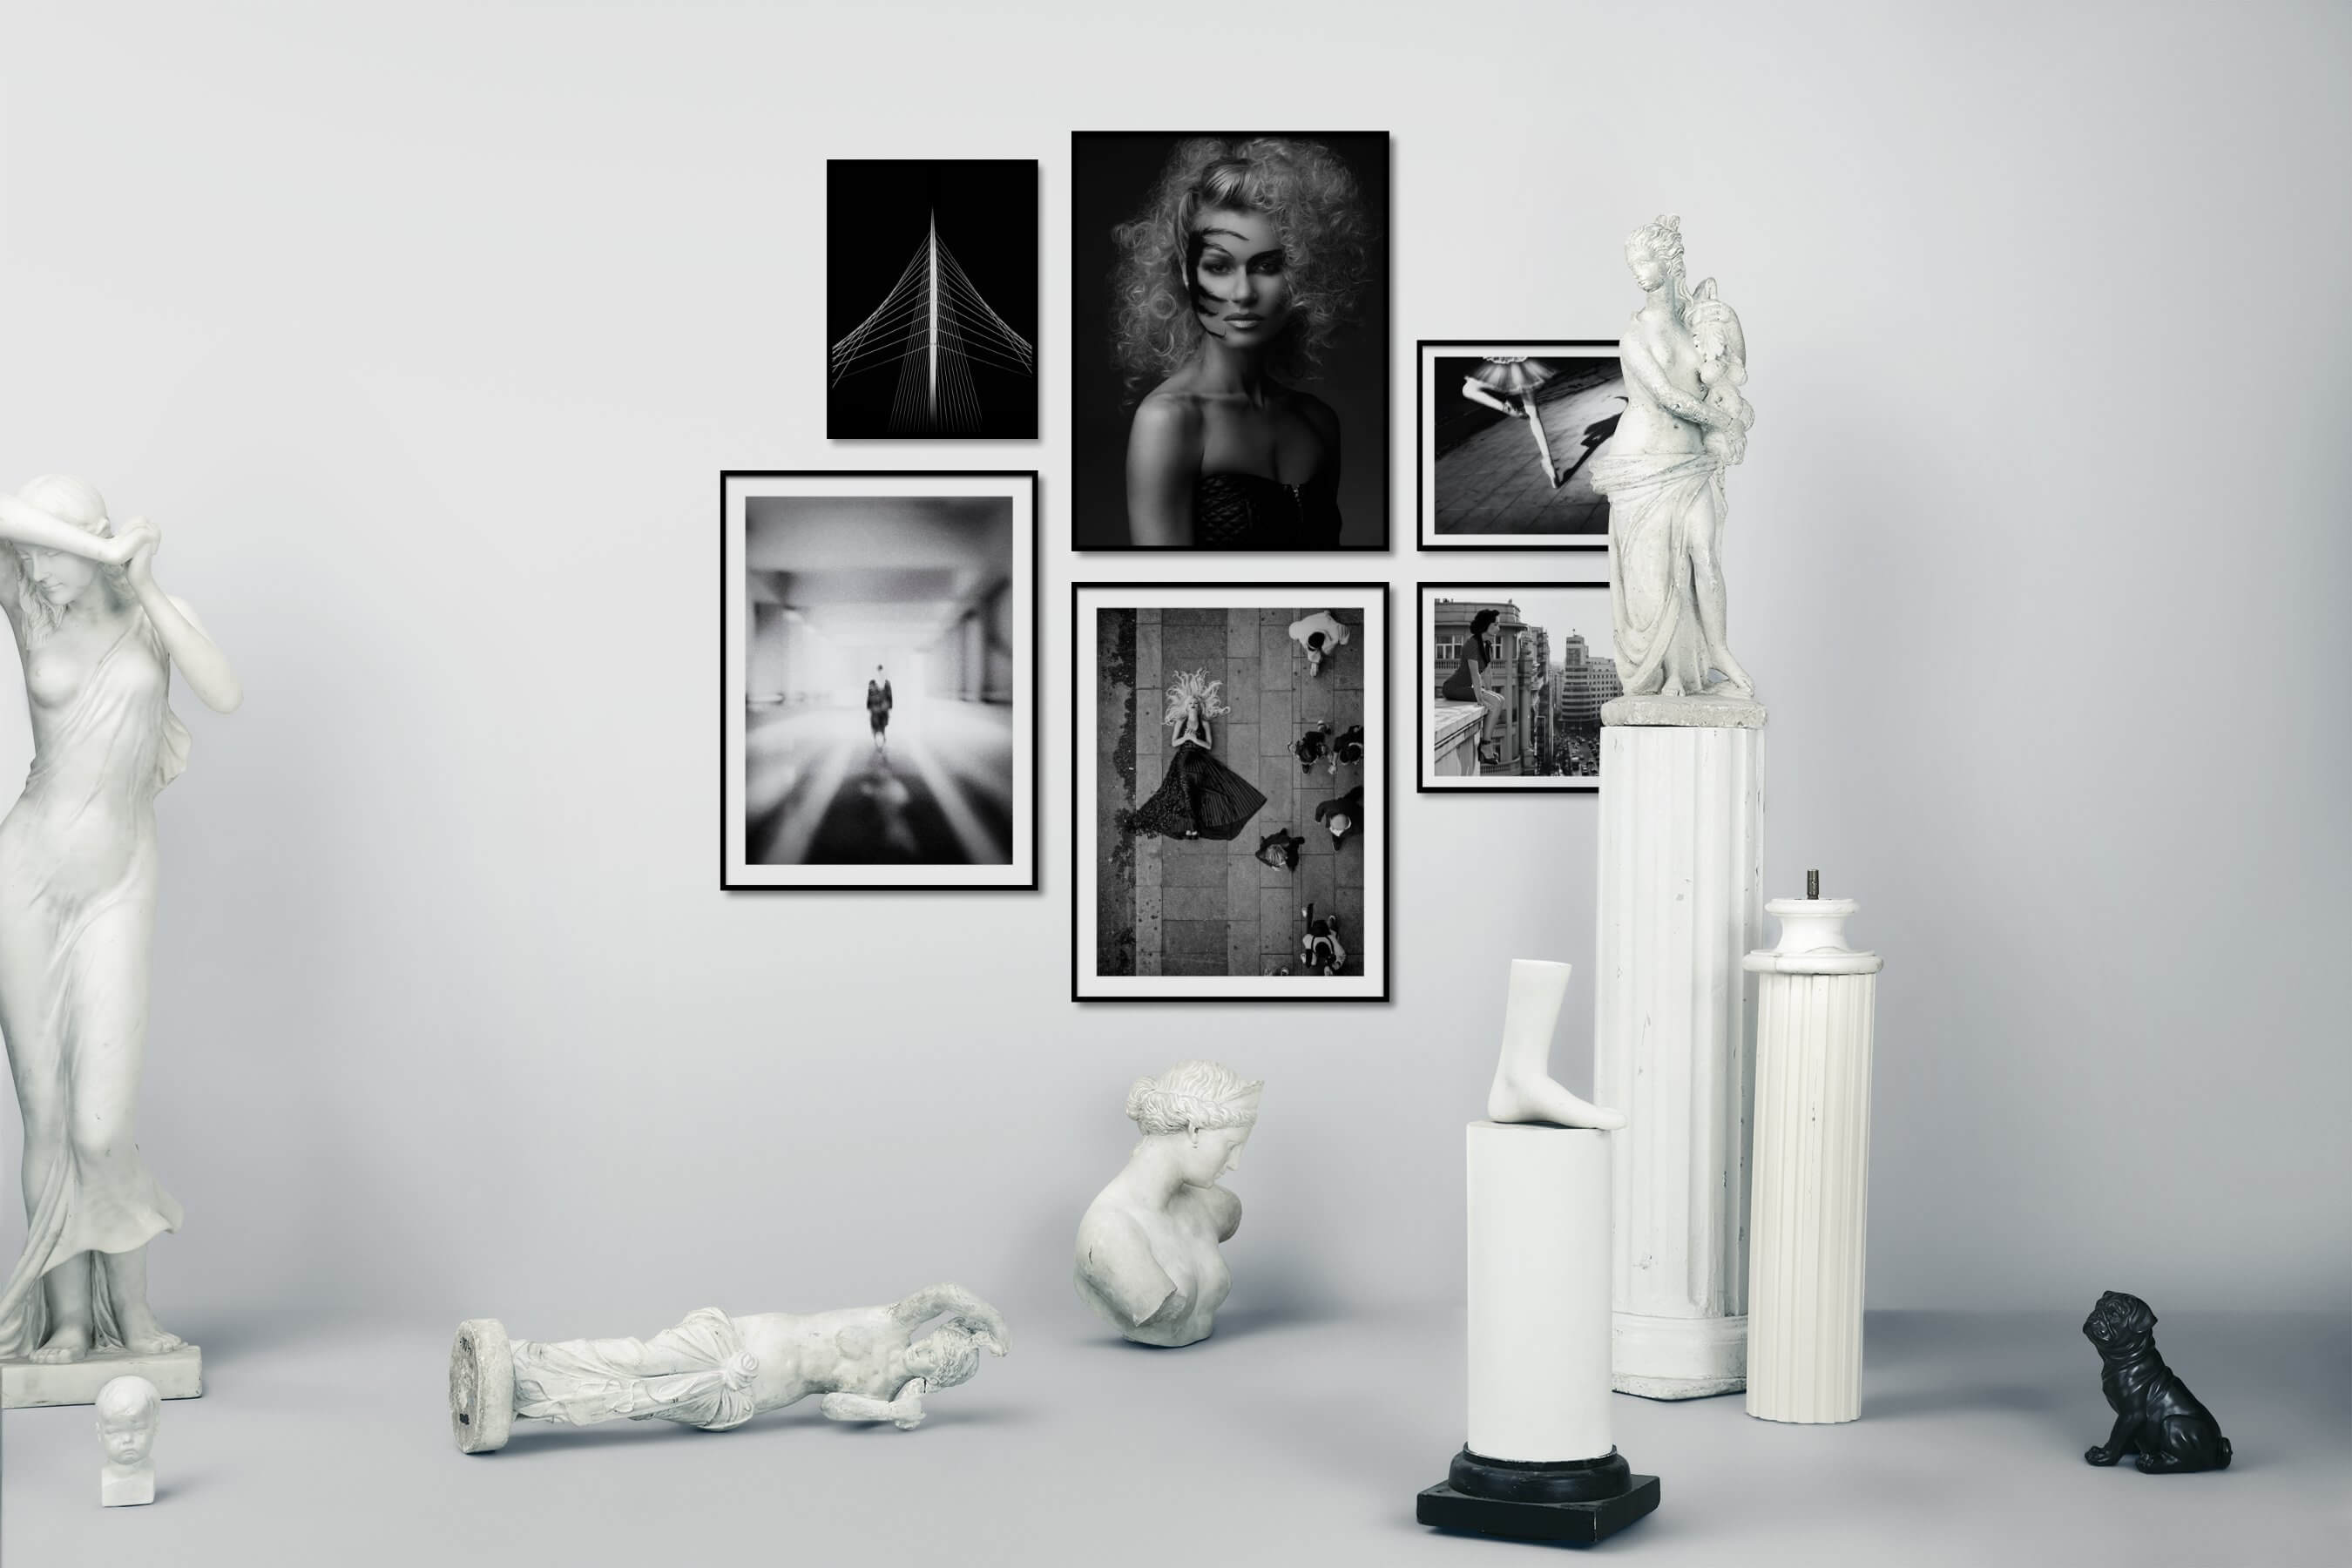 Gallery wall idea with six framed pictures arranged on a wall depicting Black & White, Dark Tones, For the Minimalist, Fashion & Beauty, Artsy, City Life, and Vintage